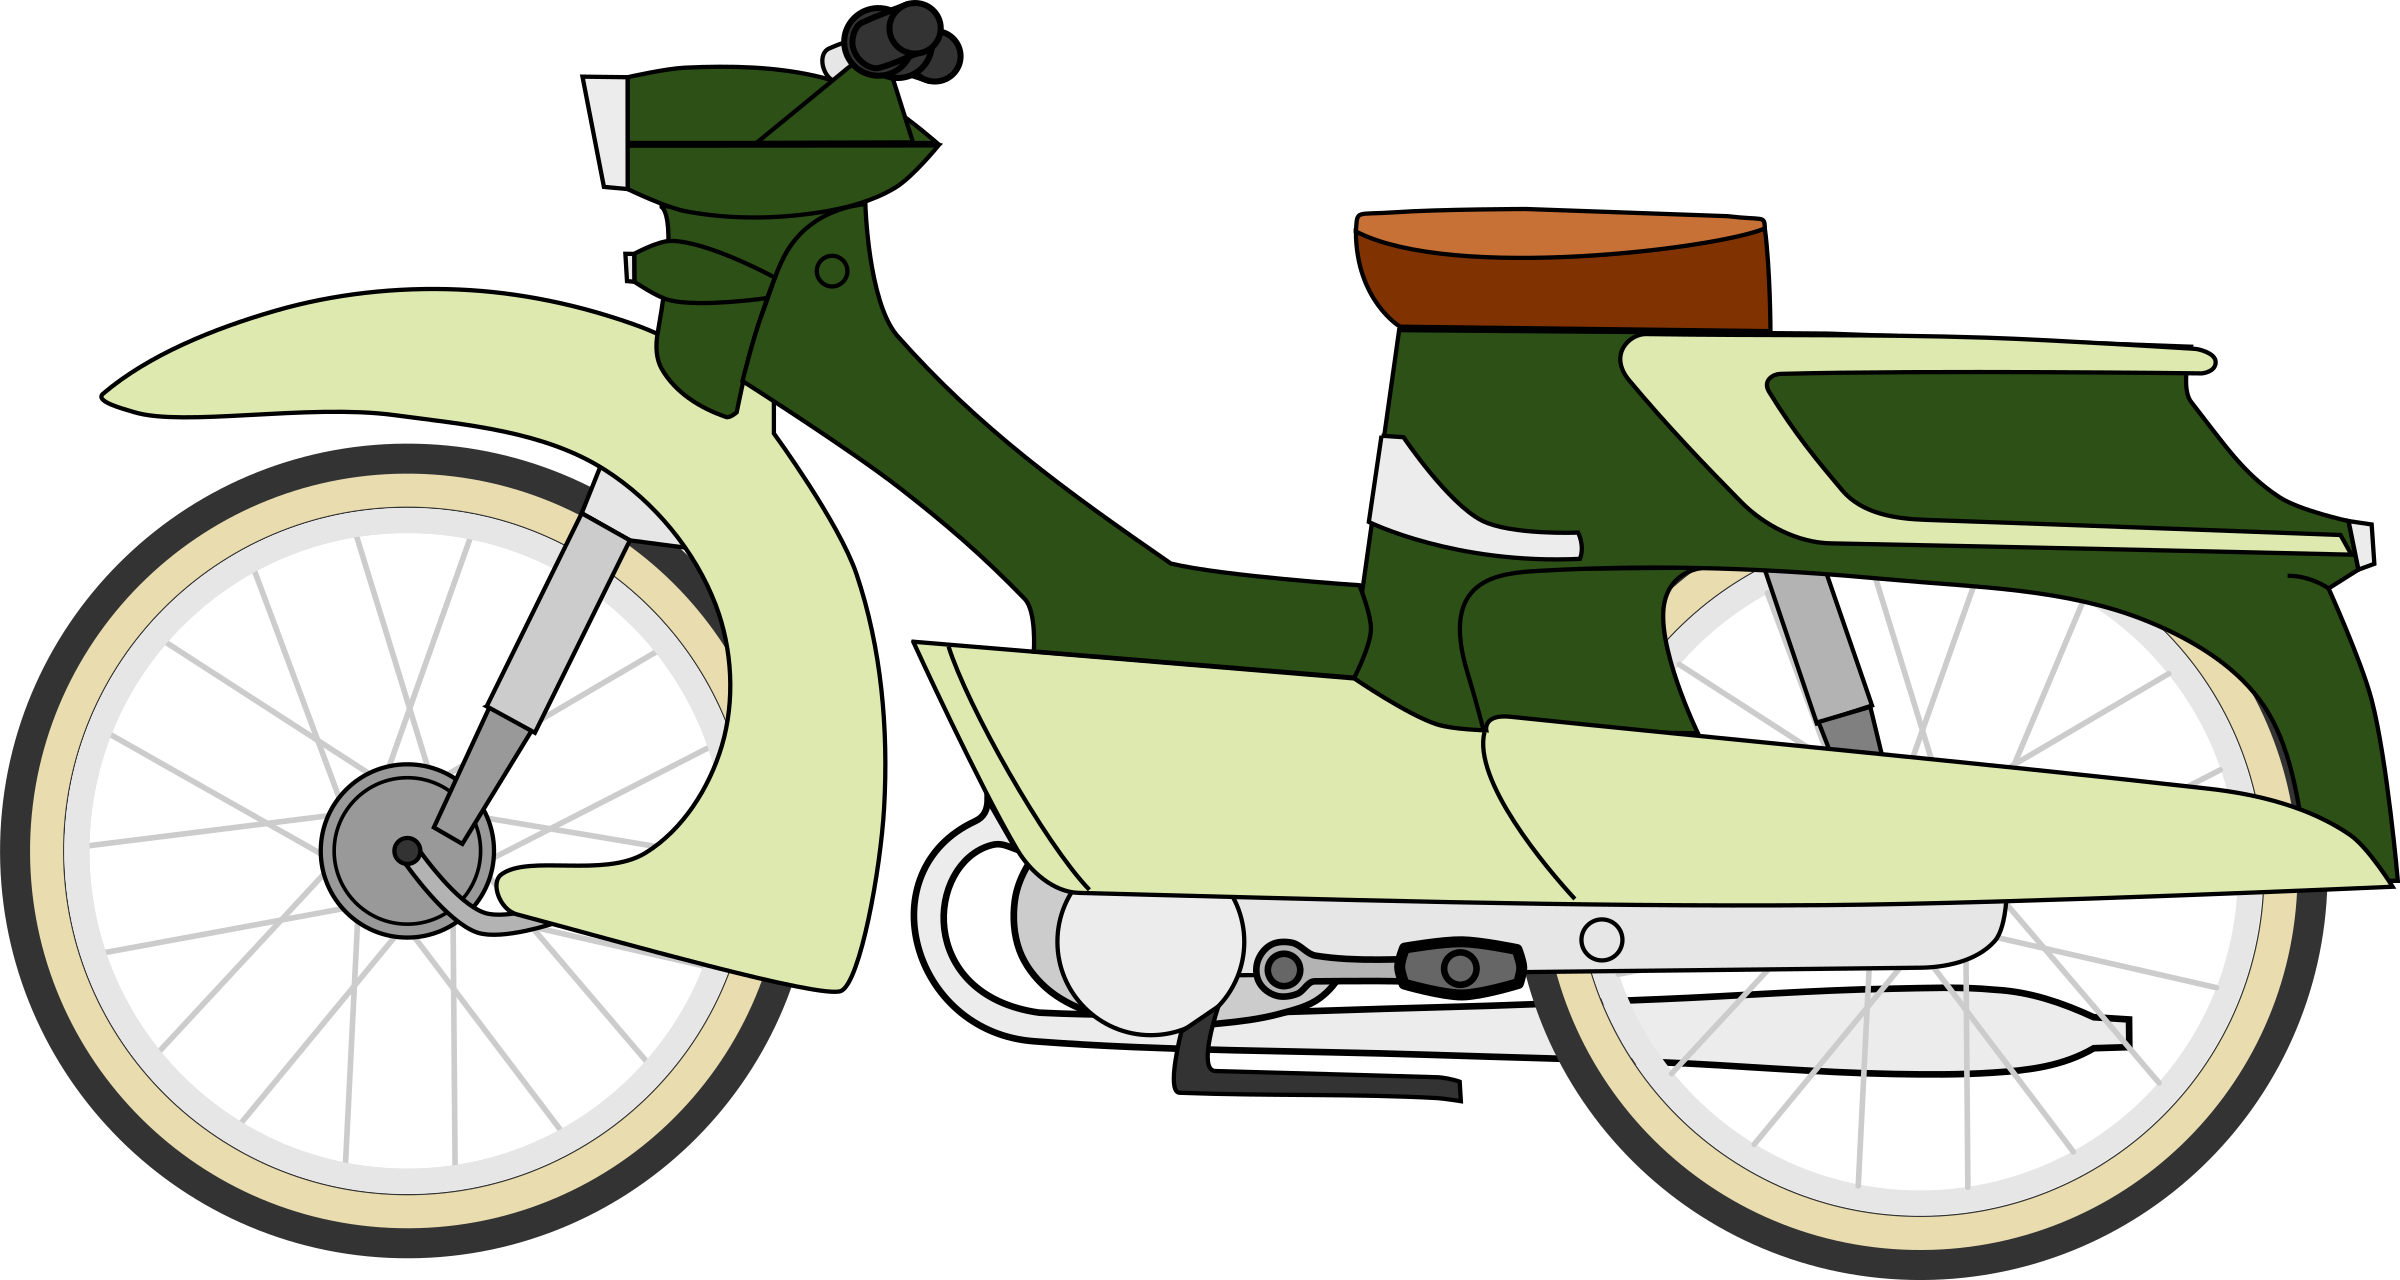 Motorcycle clipart cartoon character.  clip art images